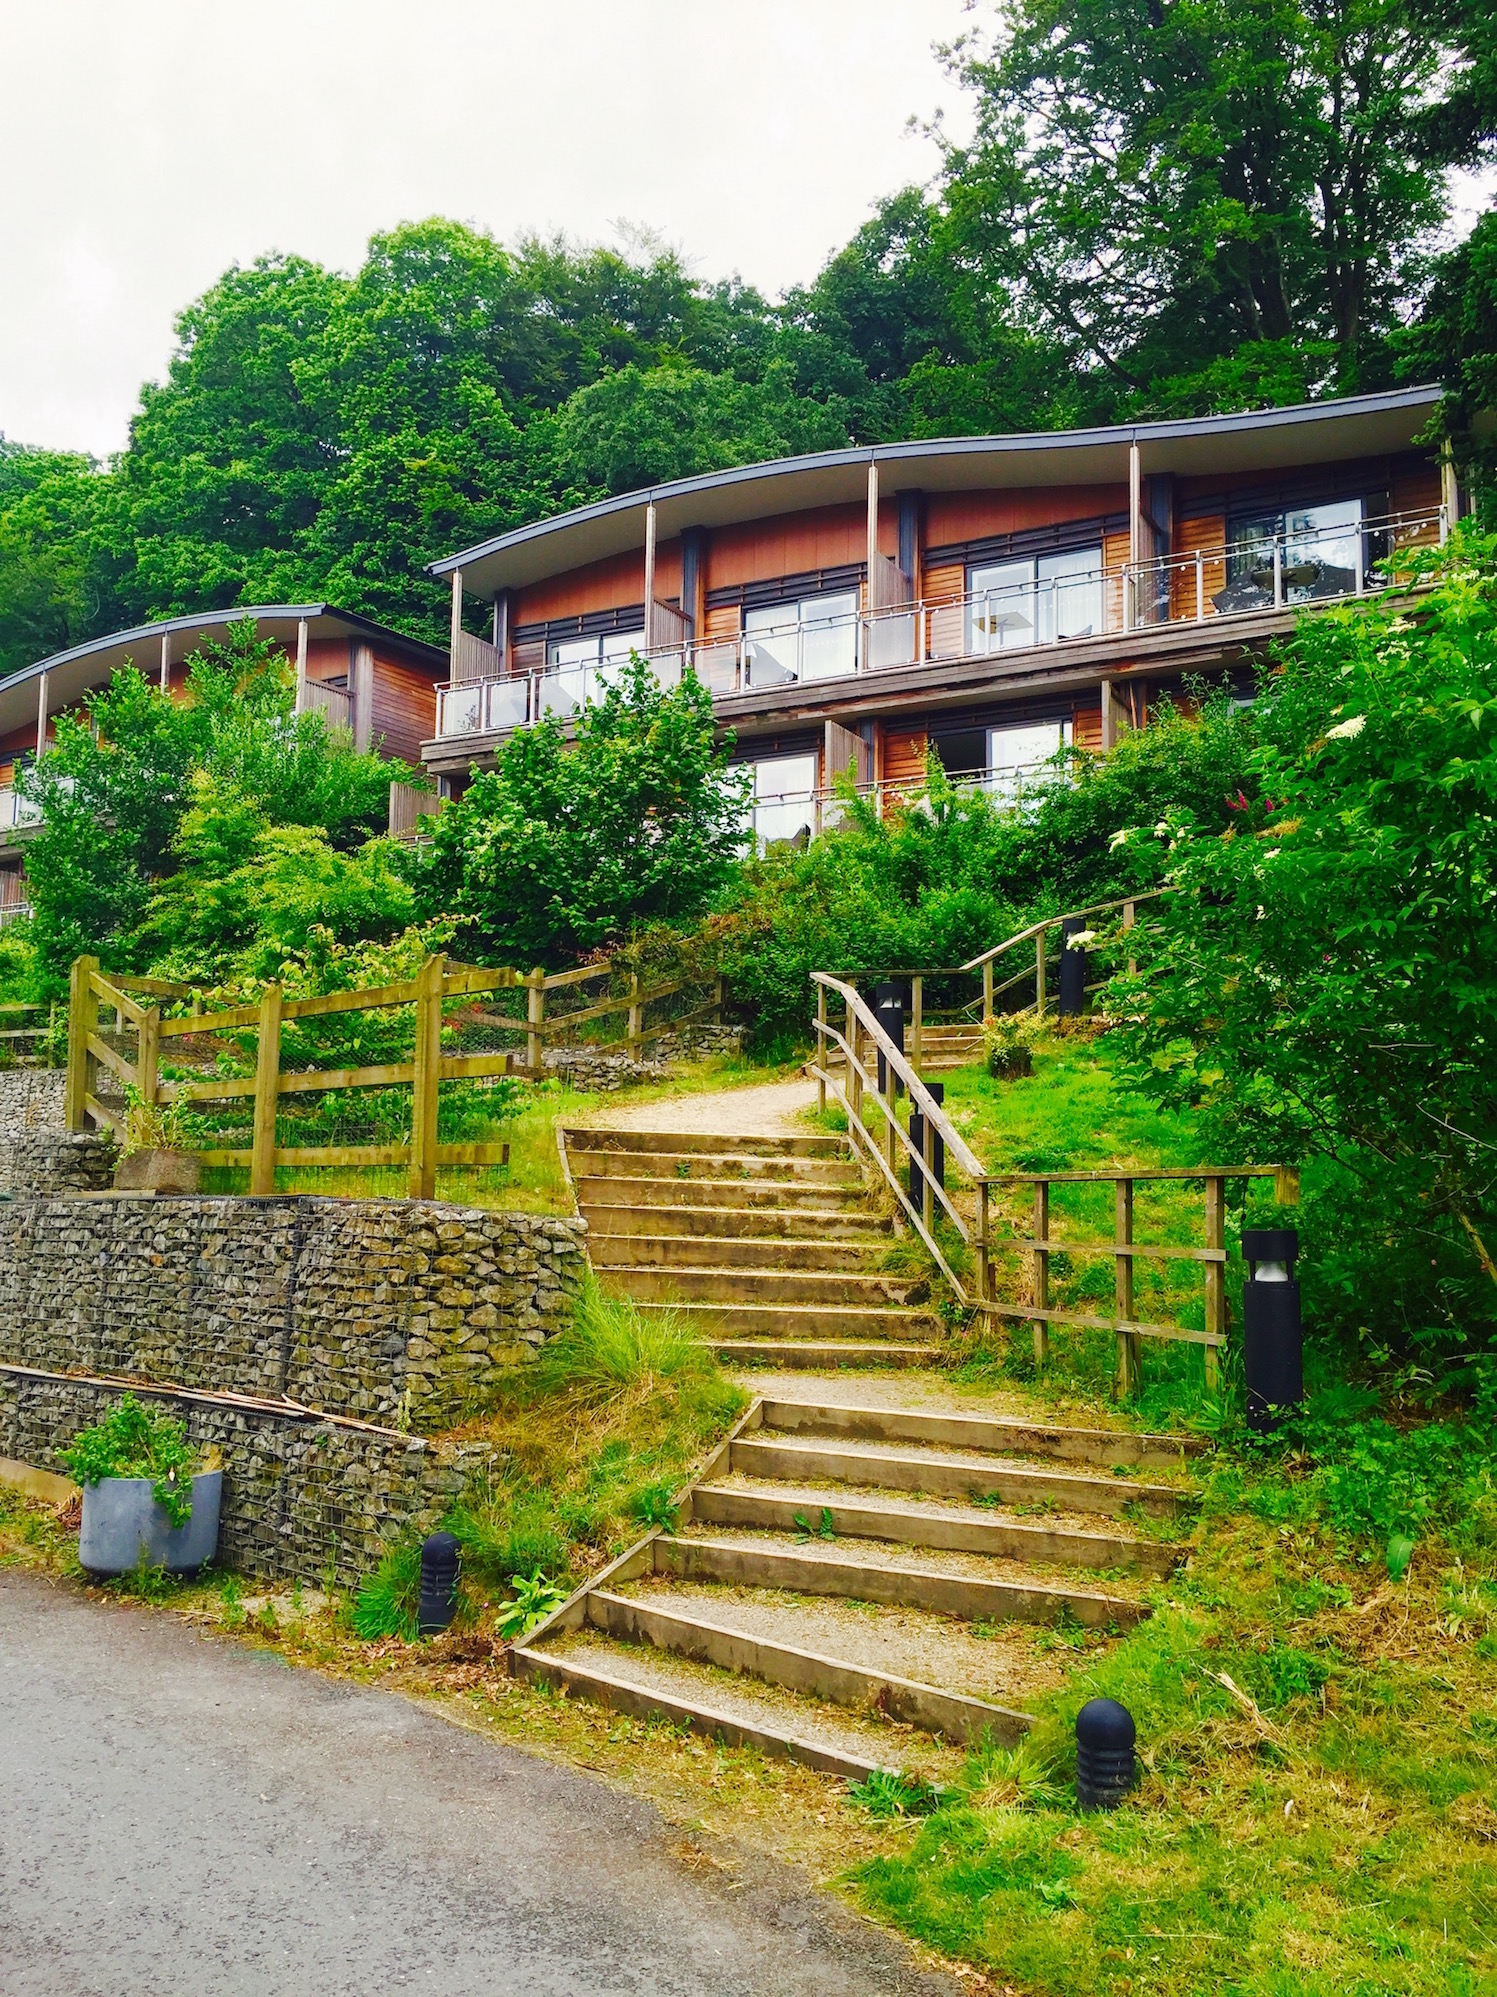 The Corwall cabin lodges